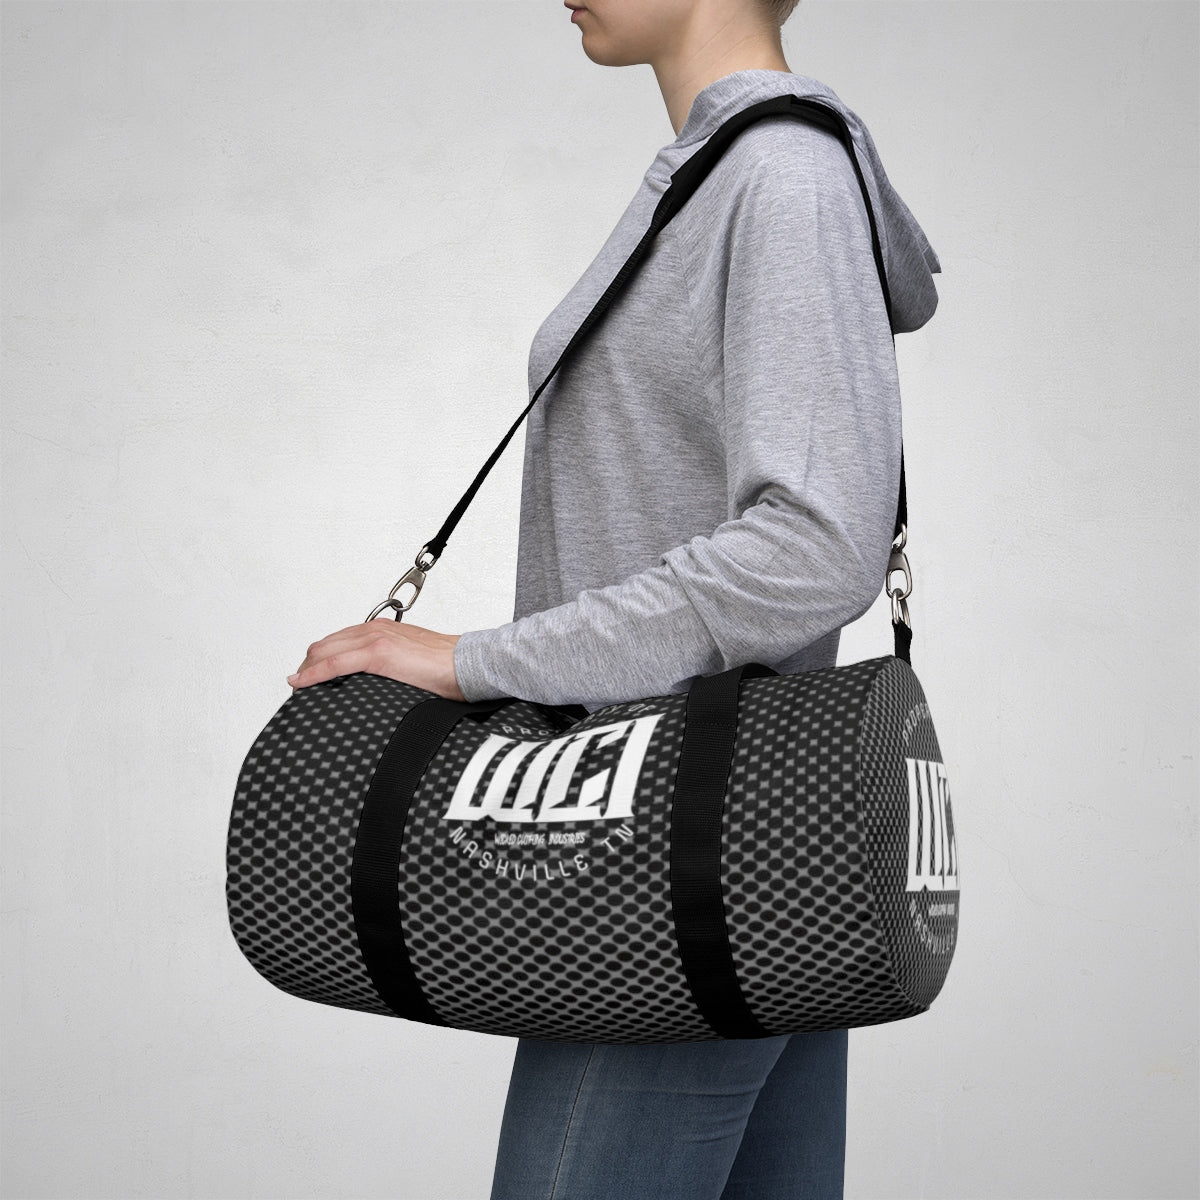 WCI/Gray/ Duffle Bag